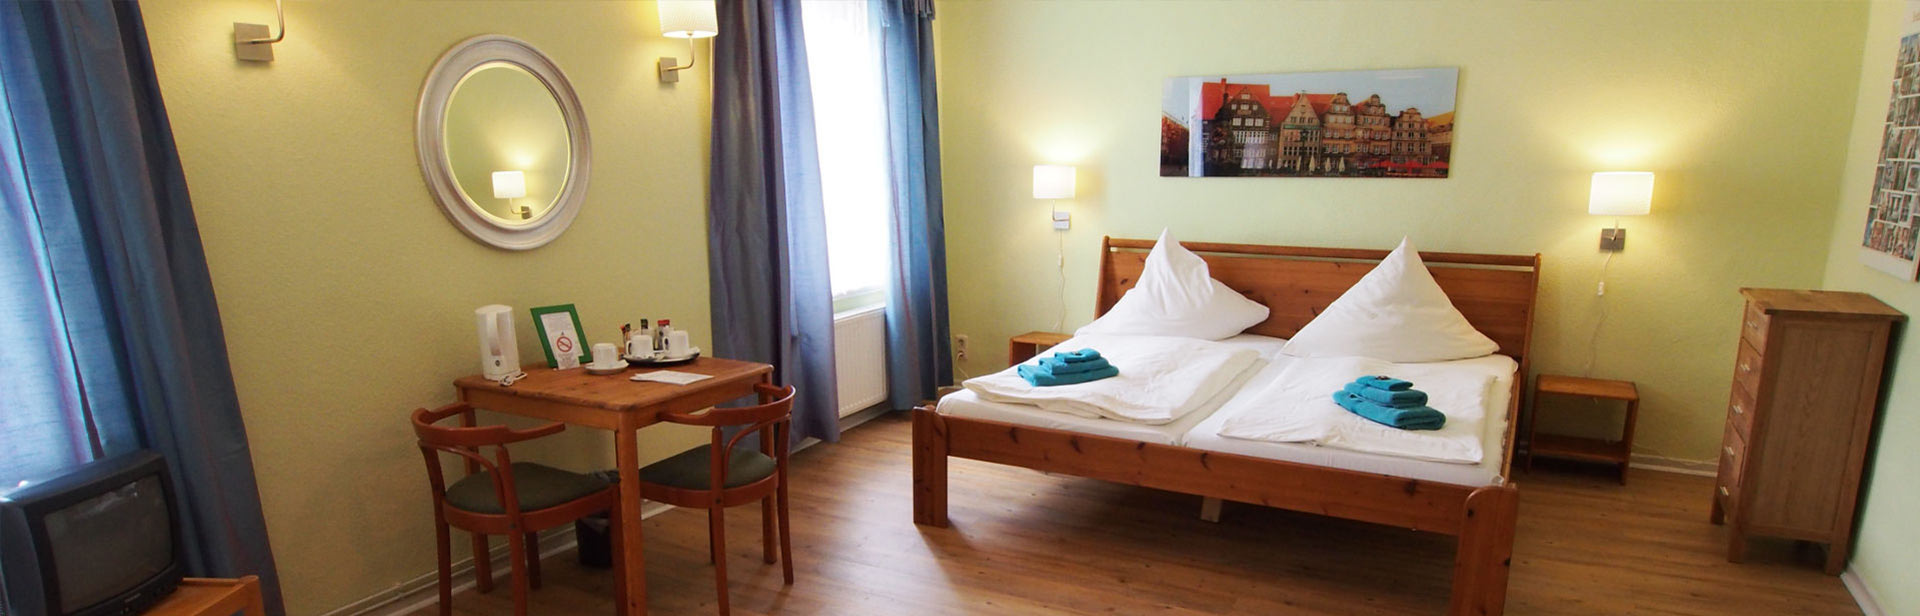 At Buthmann im Zentrum you can find cozy hotel rooms in Bremen